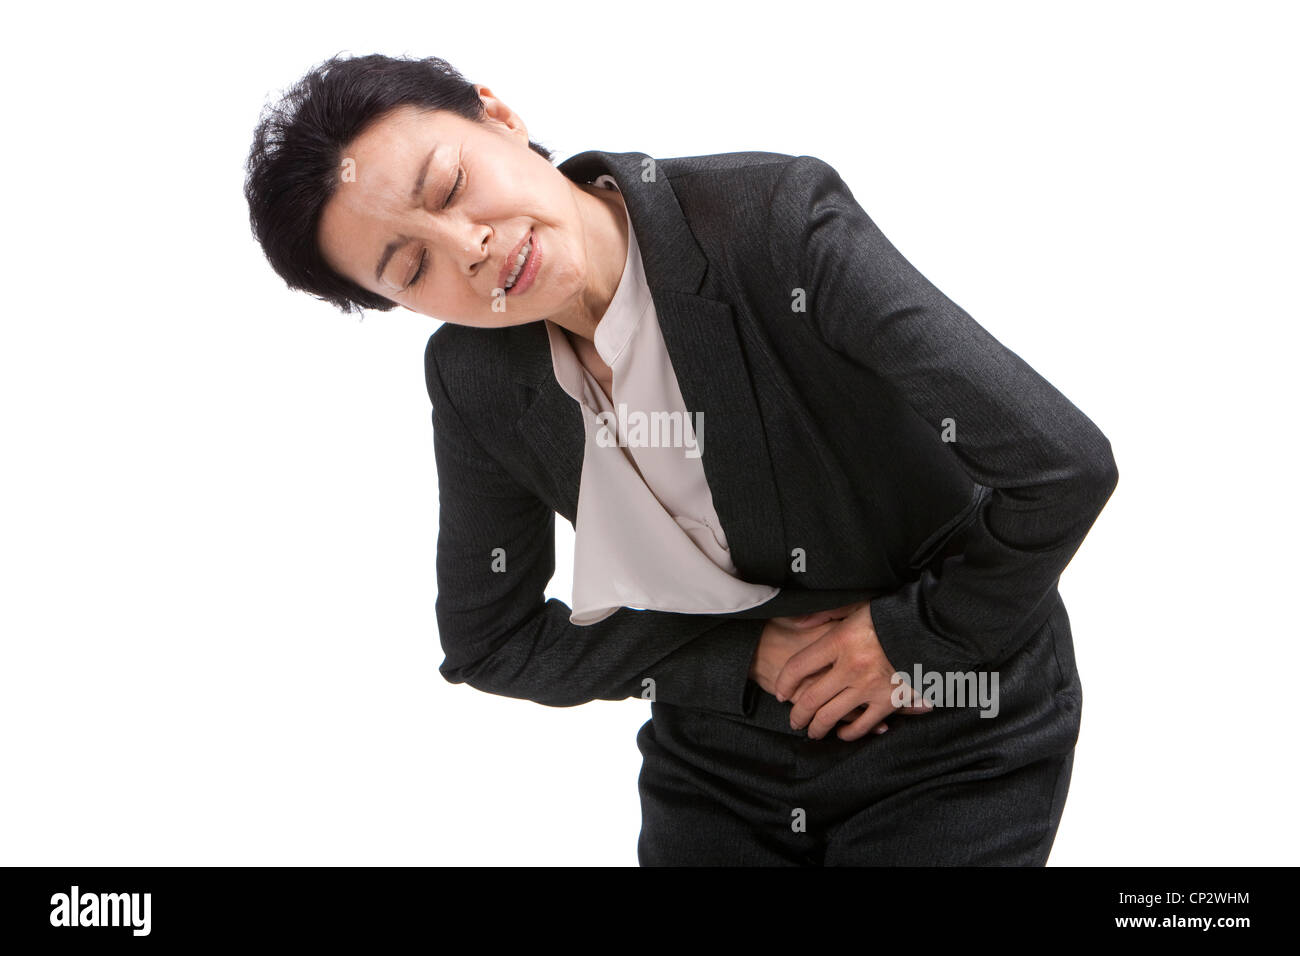 Middle-aged businesswoman suffering from stomachache - Stock Image